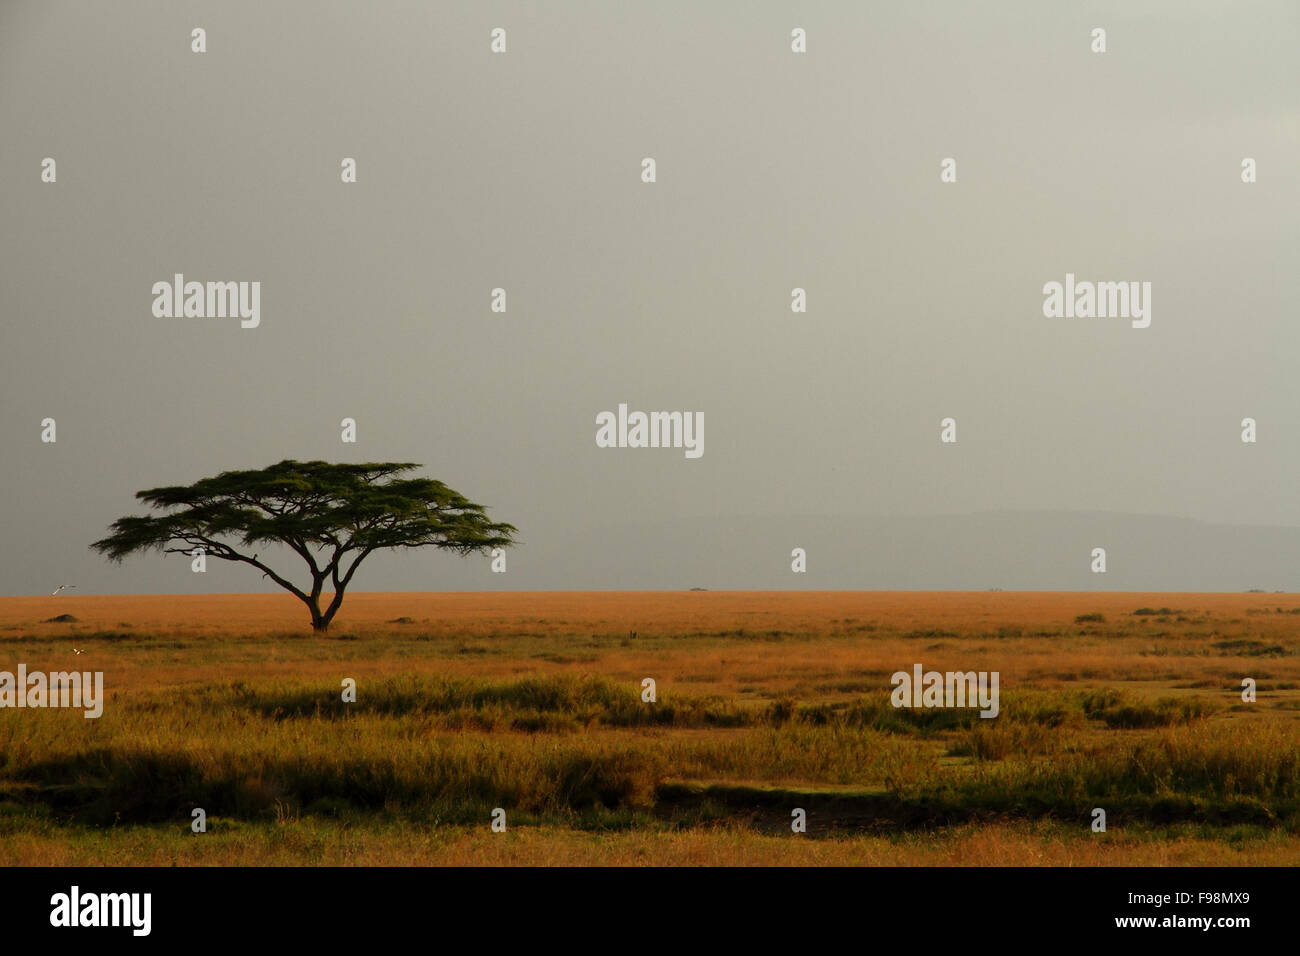 A lone acacia tree on the Serengeti set against a misty and expansive sky - Stock Image